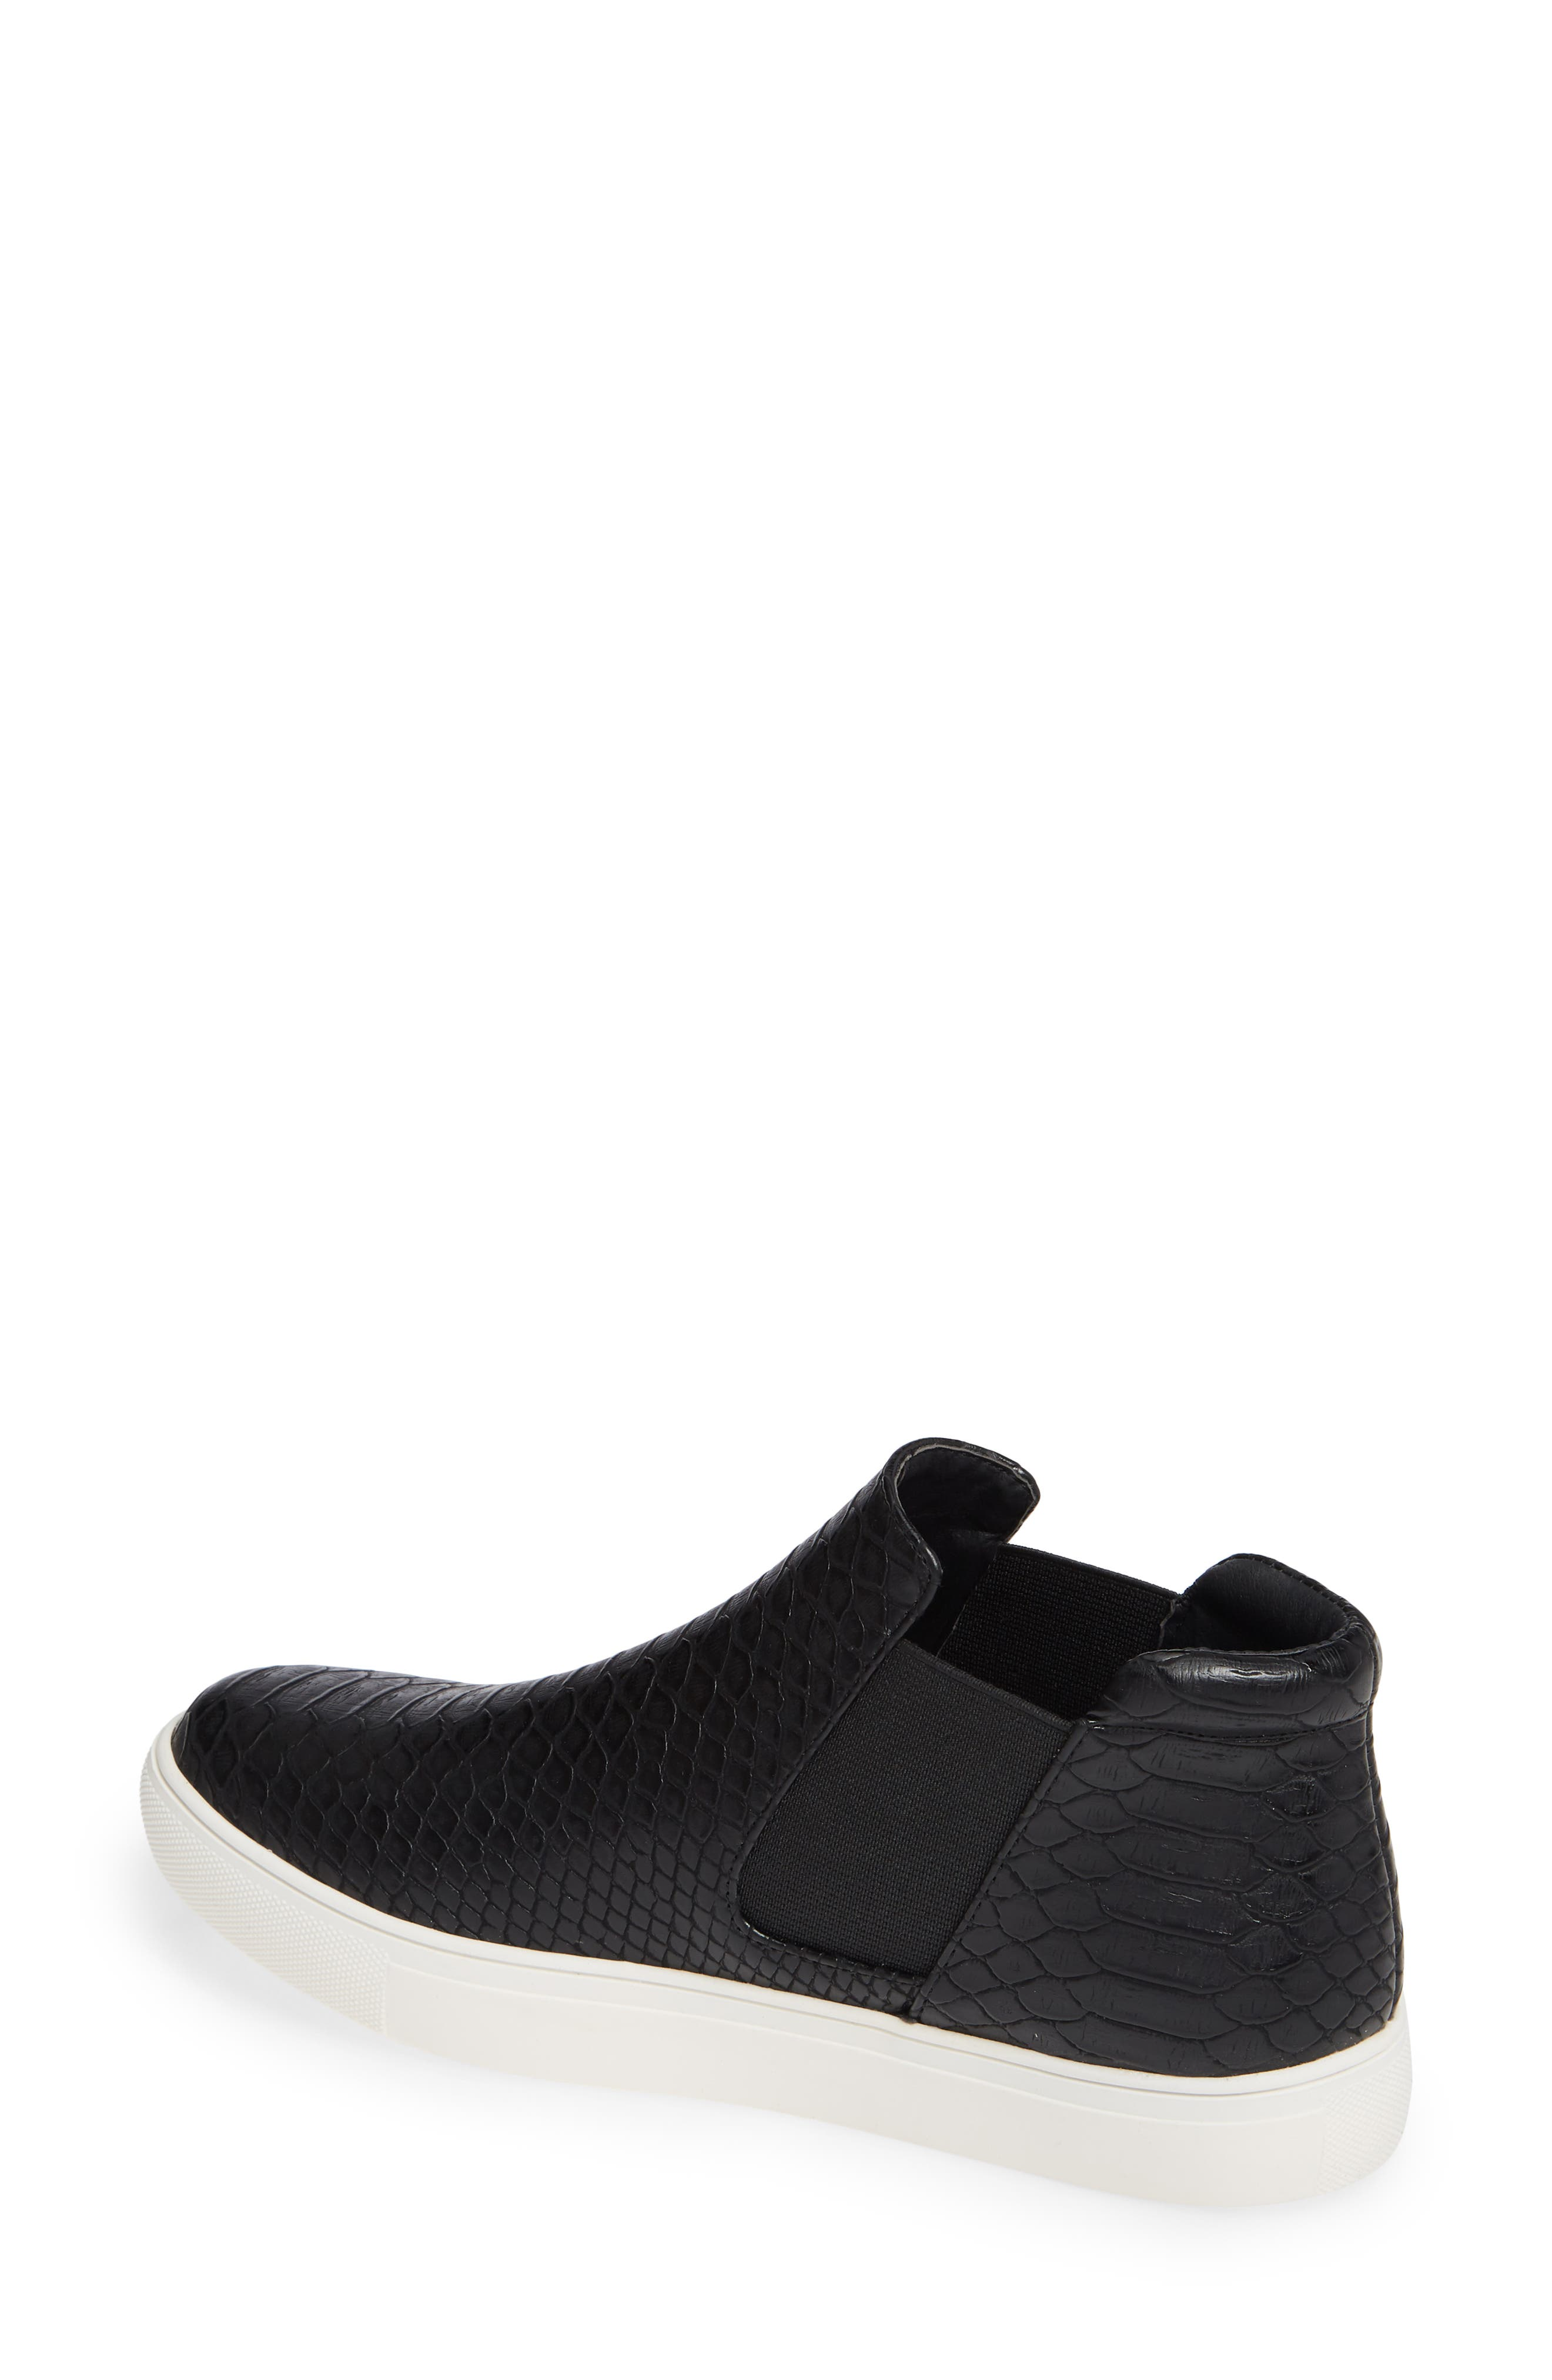 Harlan Slip-On Sneaker,                             Alternate thumbnail 2, color,                             BLACK SNAKE PRINT